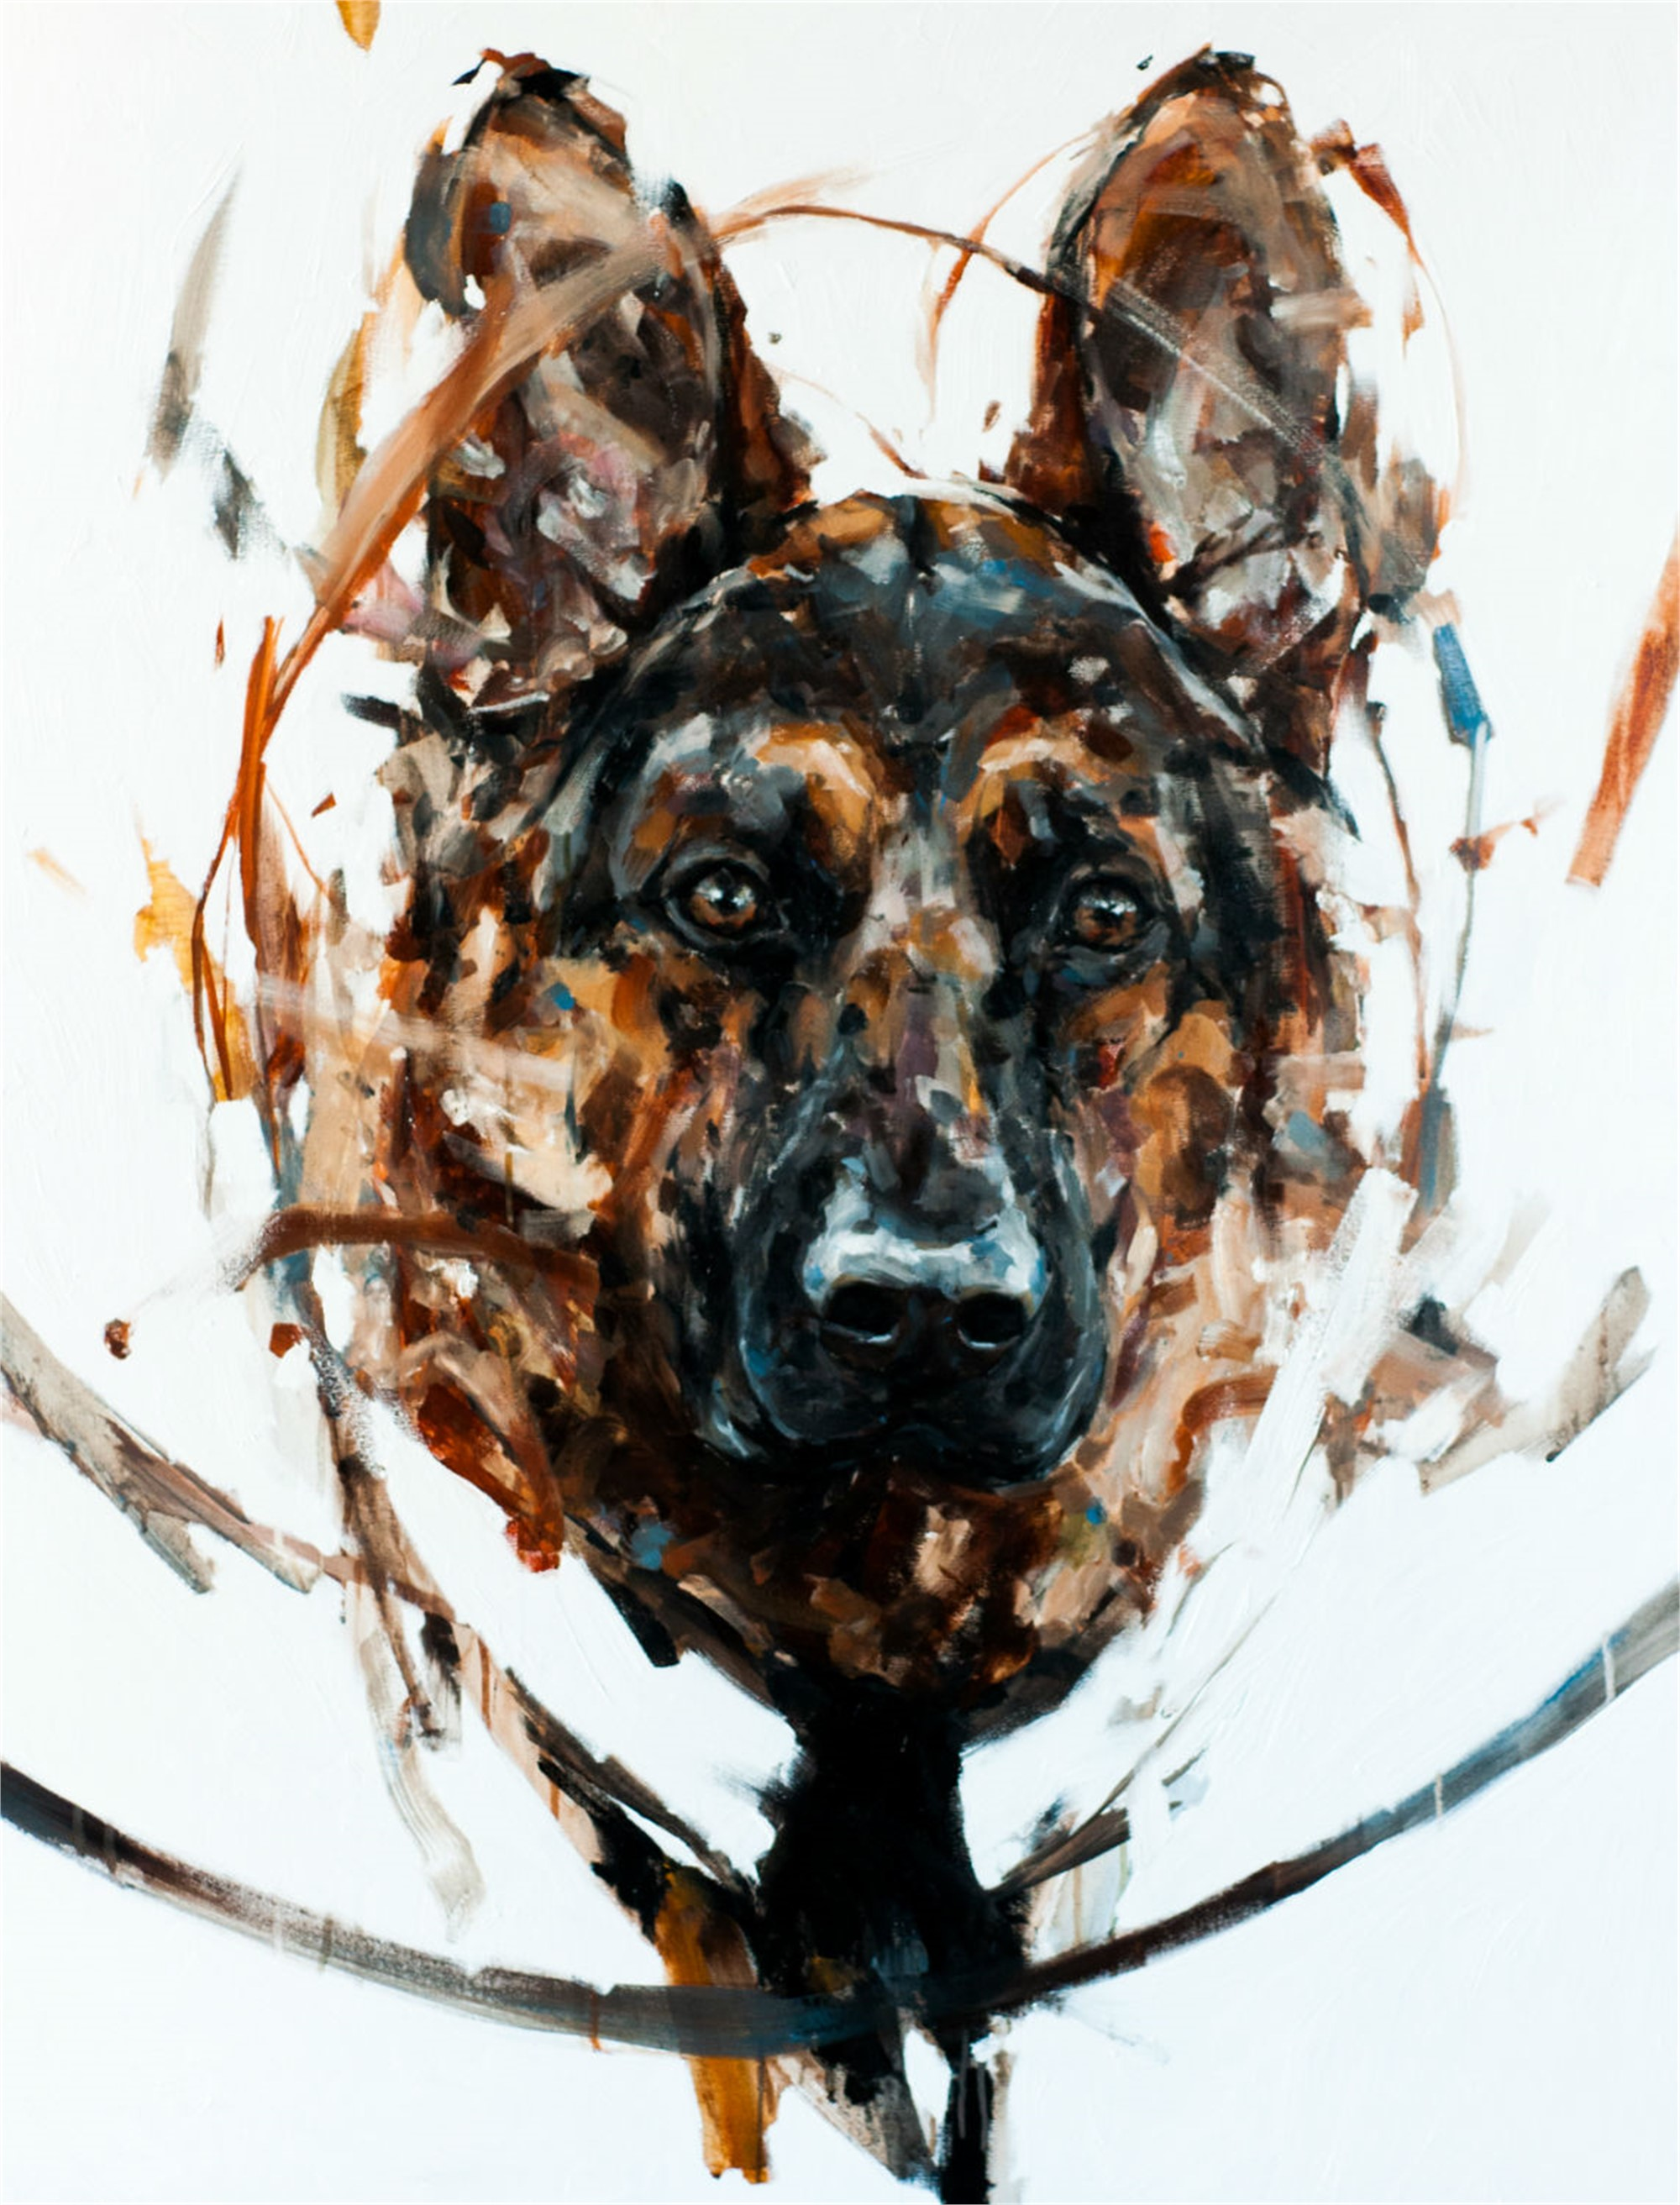 German Shepard 2 by Thibault Jandot